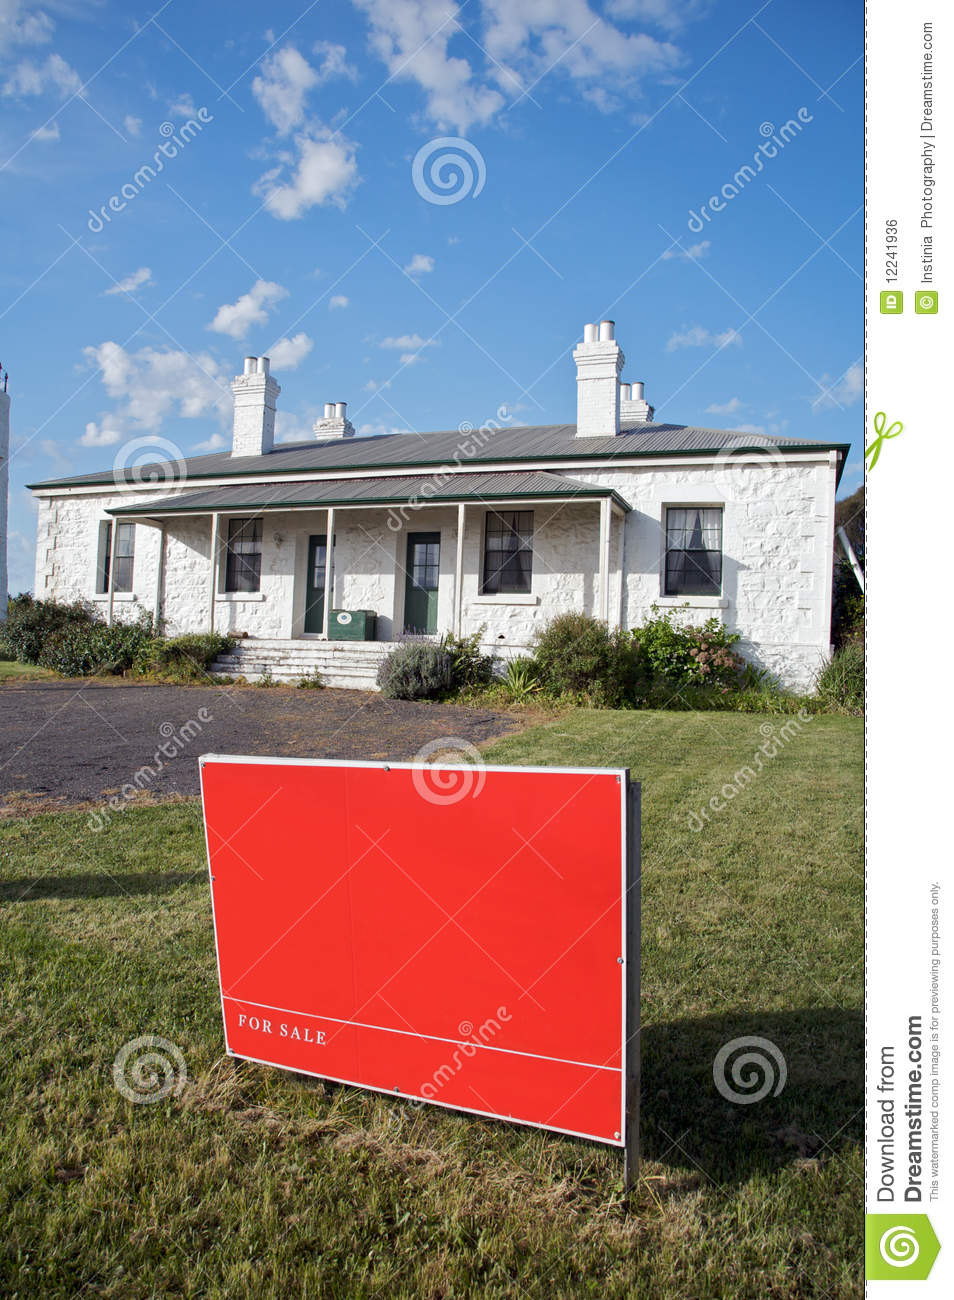 Home for sale sign new home or house royalty free stock for New home sign